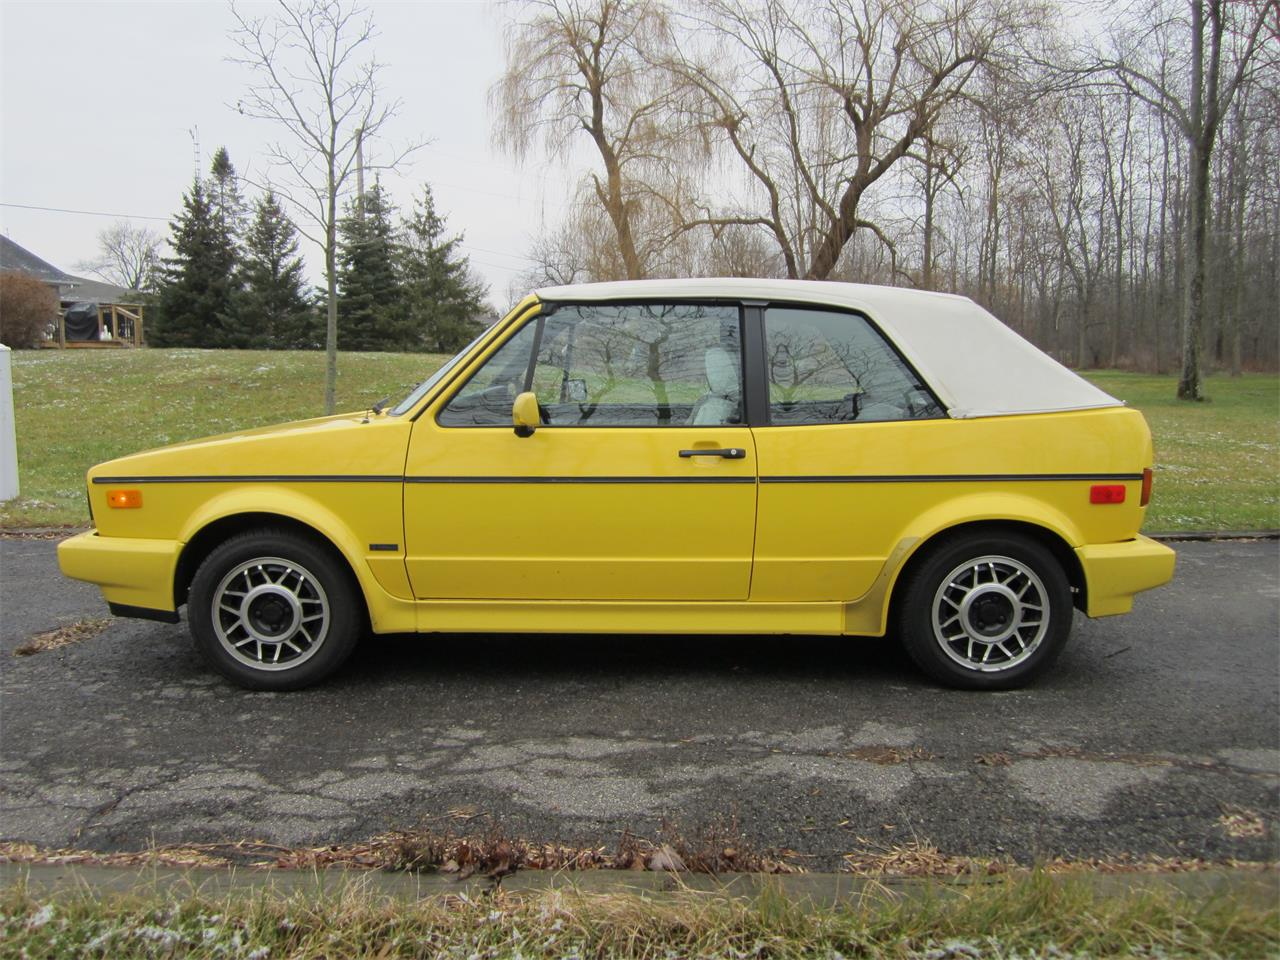 Large Picture of 1991 Cabriolet located in Buffalo New York - $15,000.00 Offered by a Private Seller - JGCG